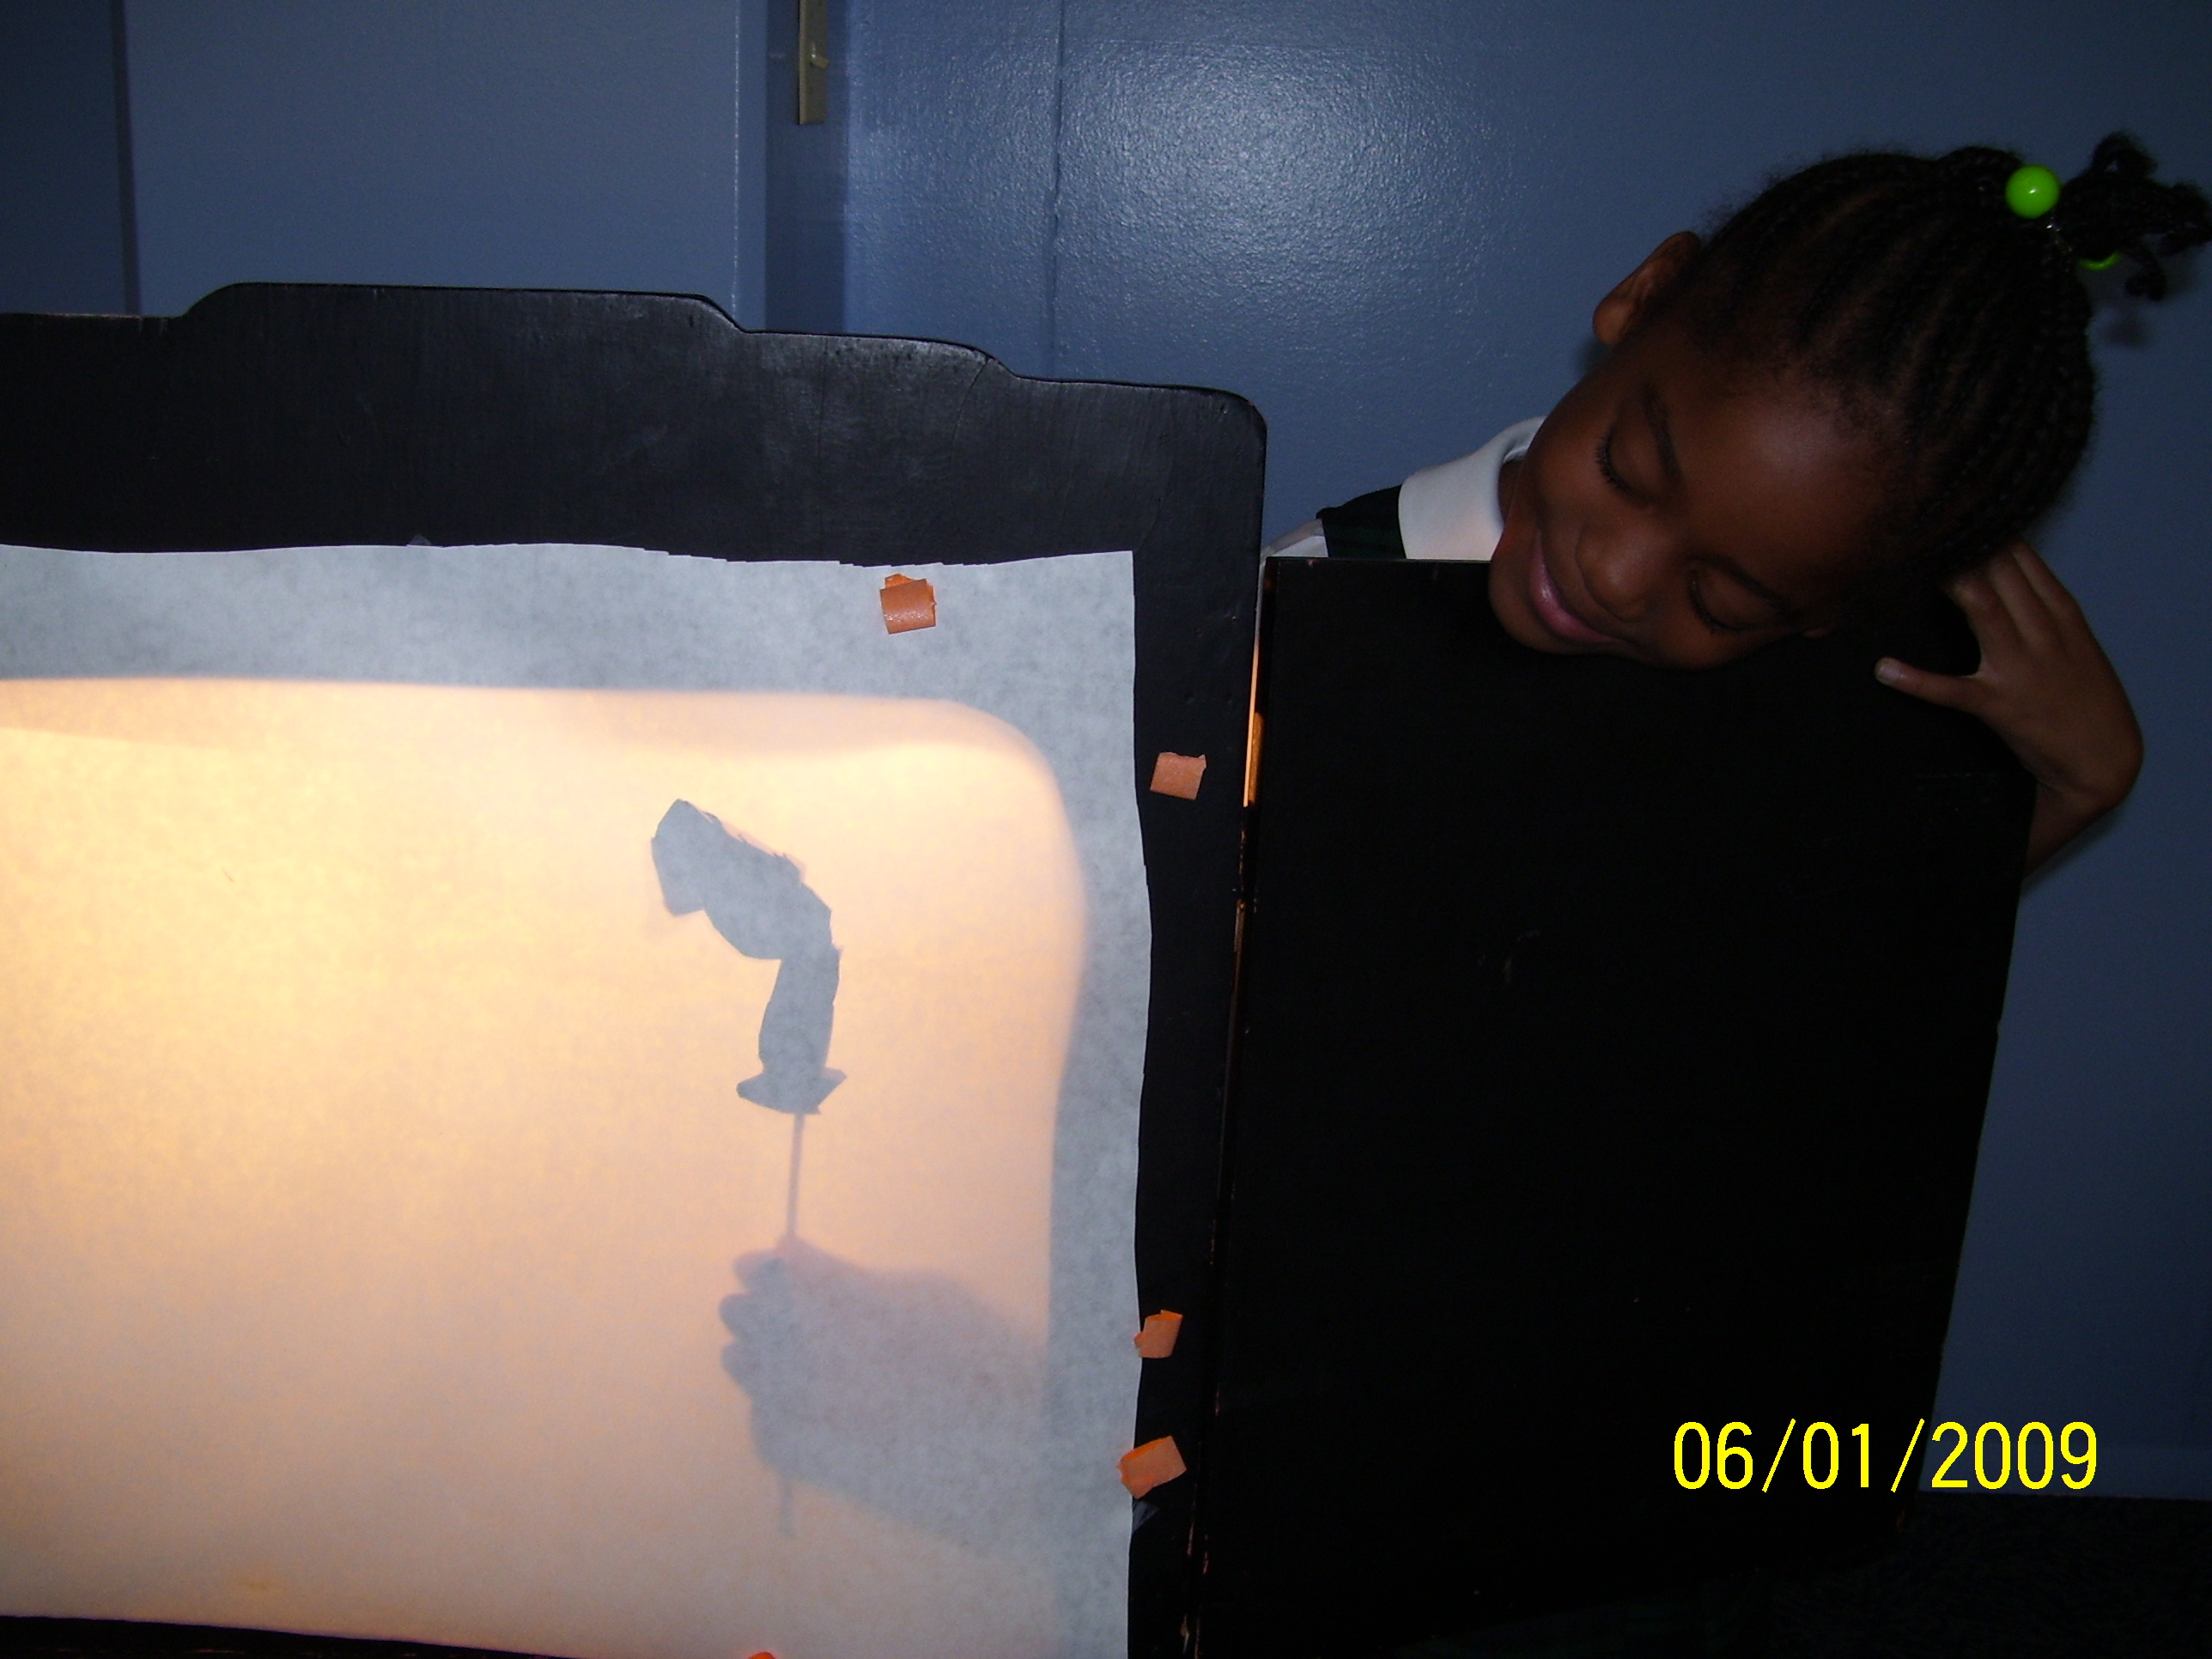 A Rusalka puppet gets a whirl in the shadow theater.